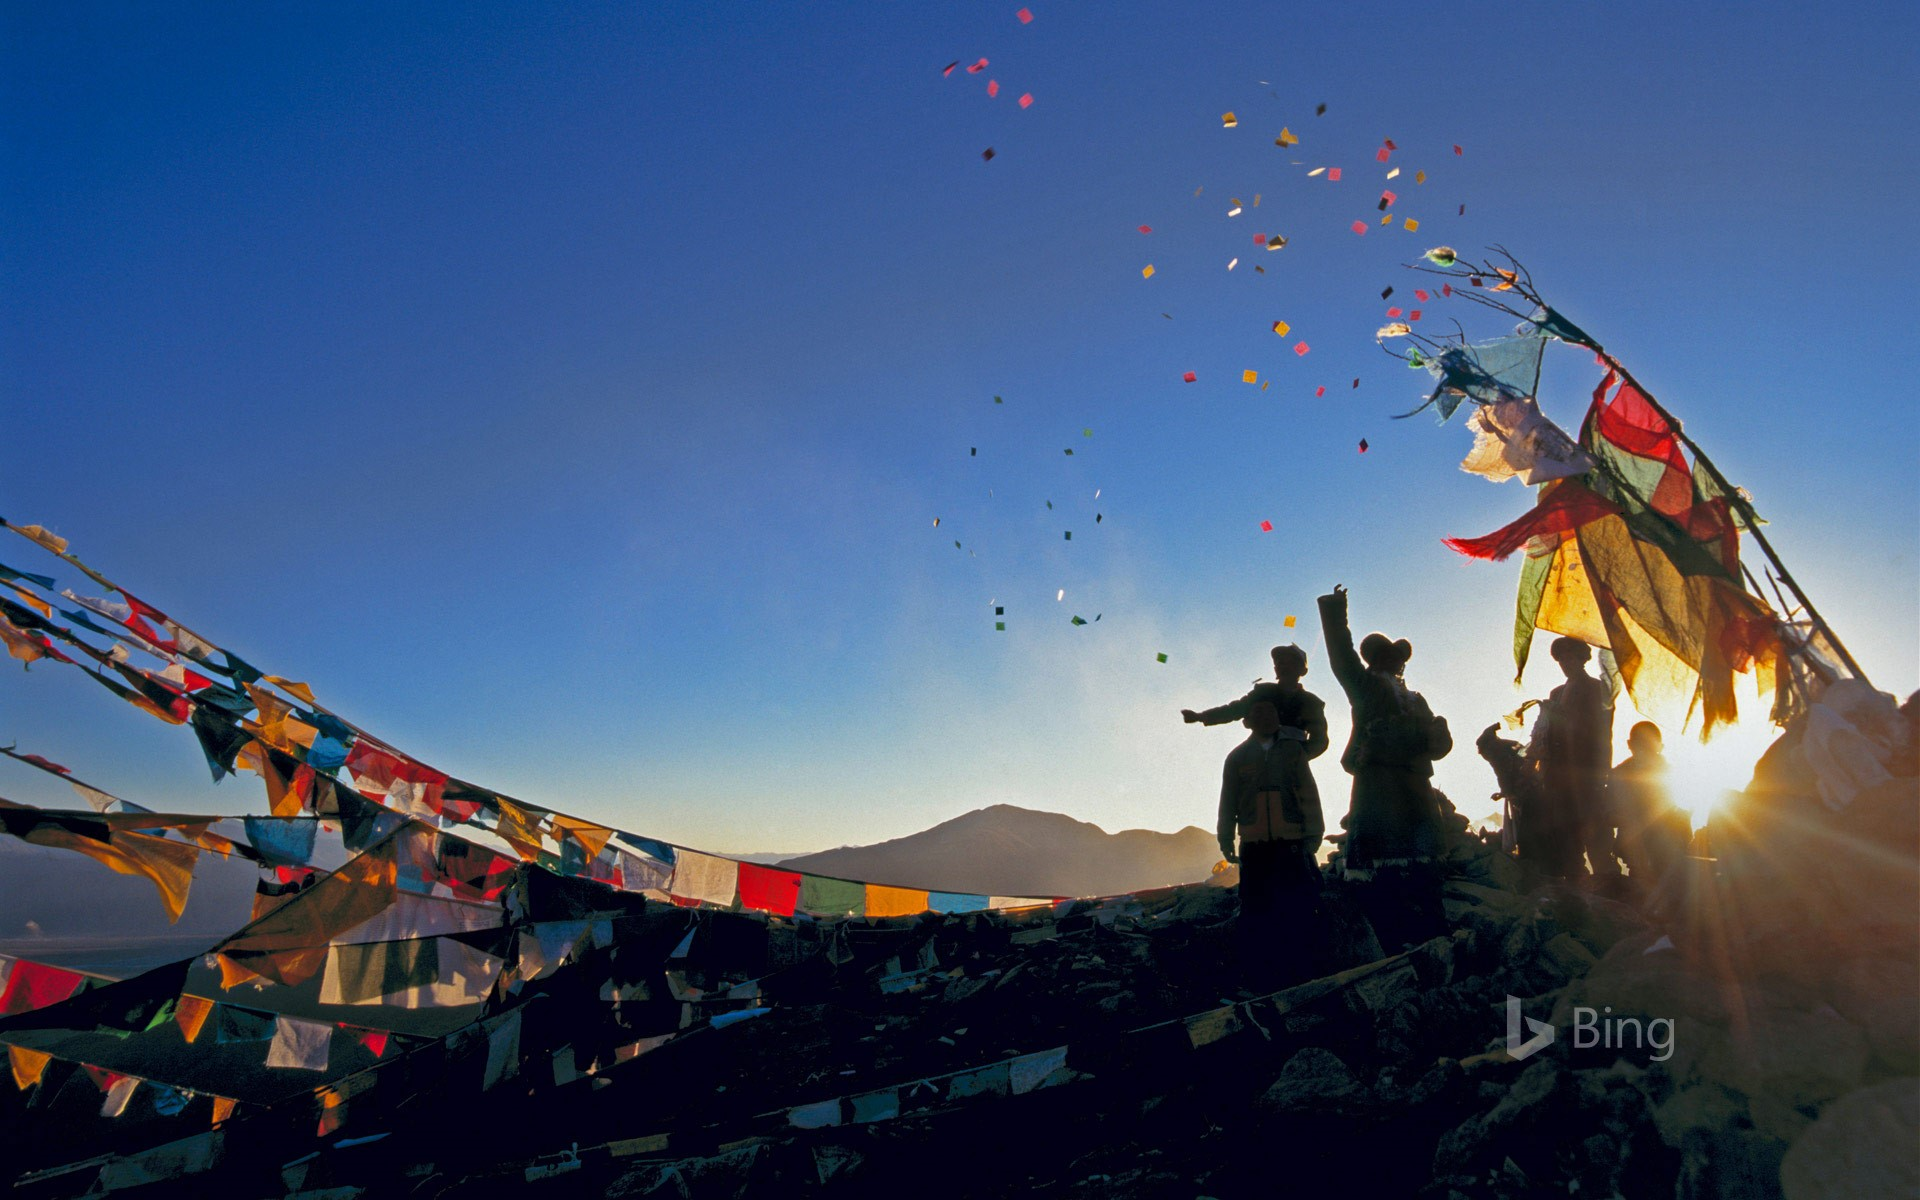 Pilgrims throwing wind horses into the air above Ganden Monastery for the New Year in Tibet, China